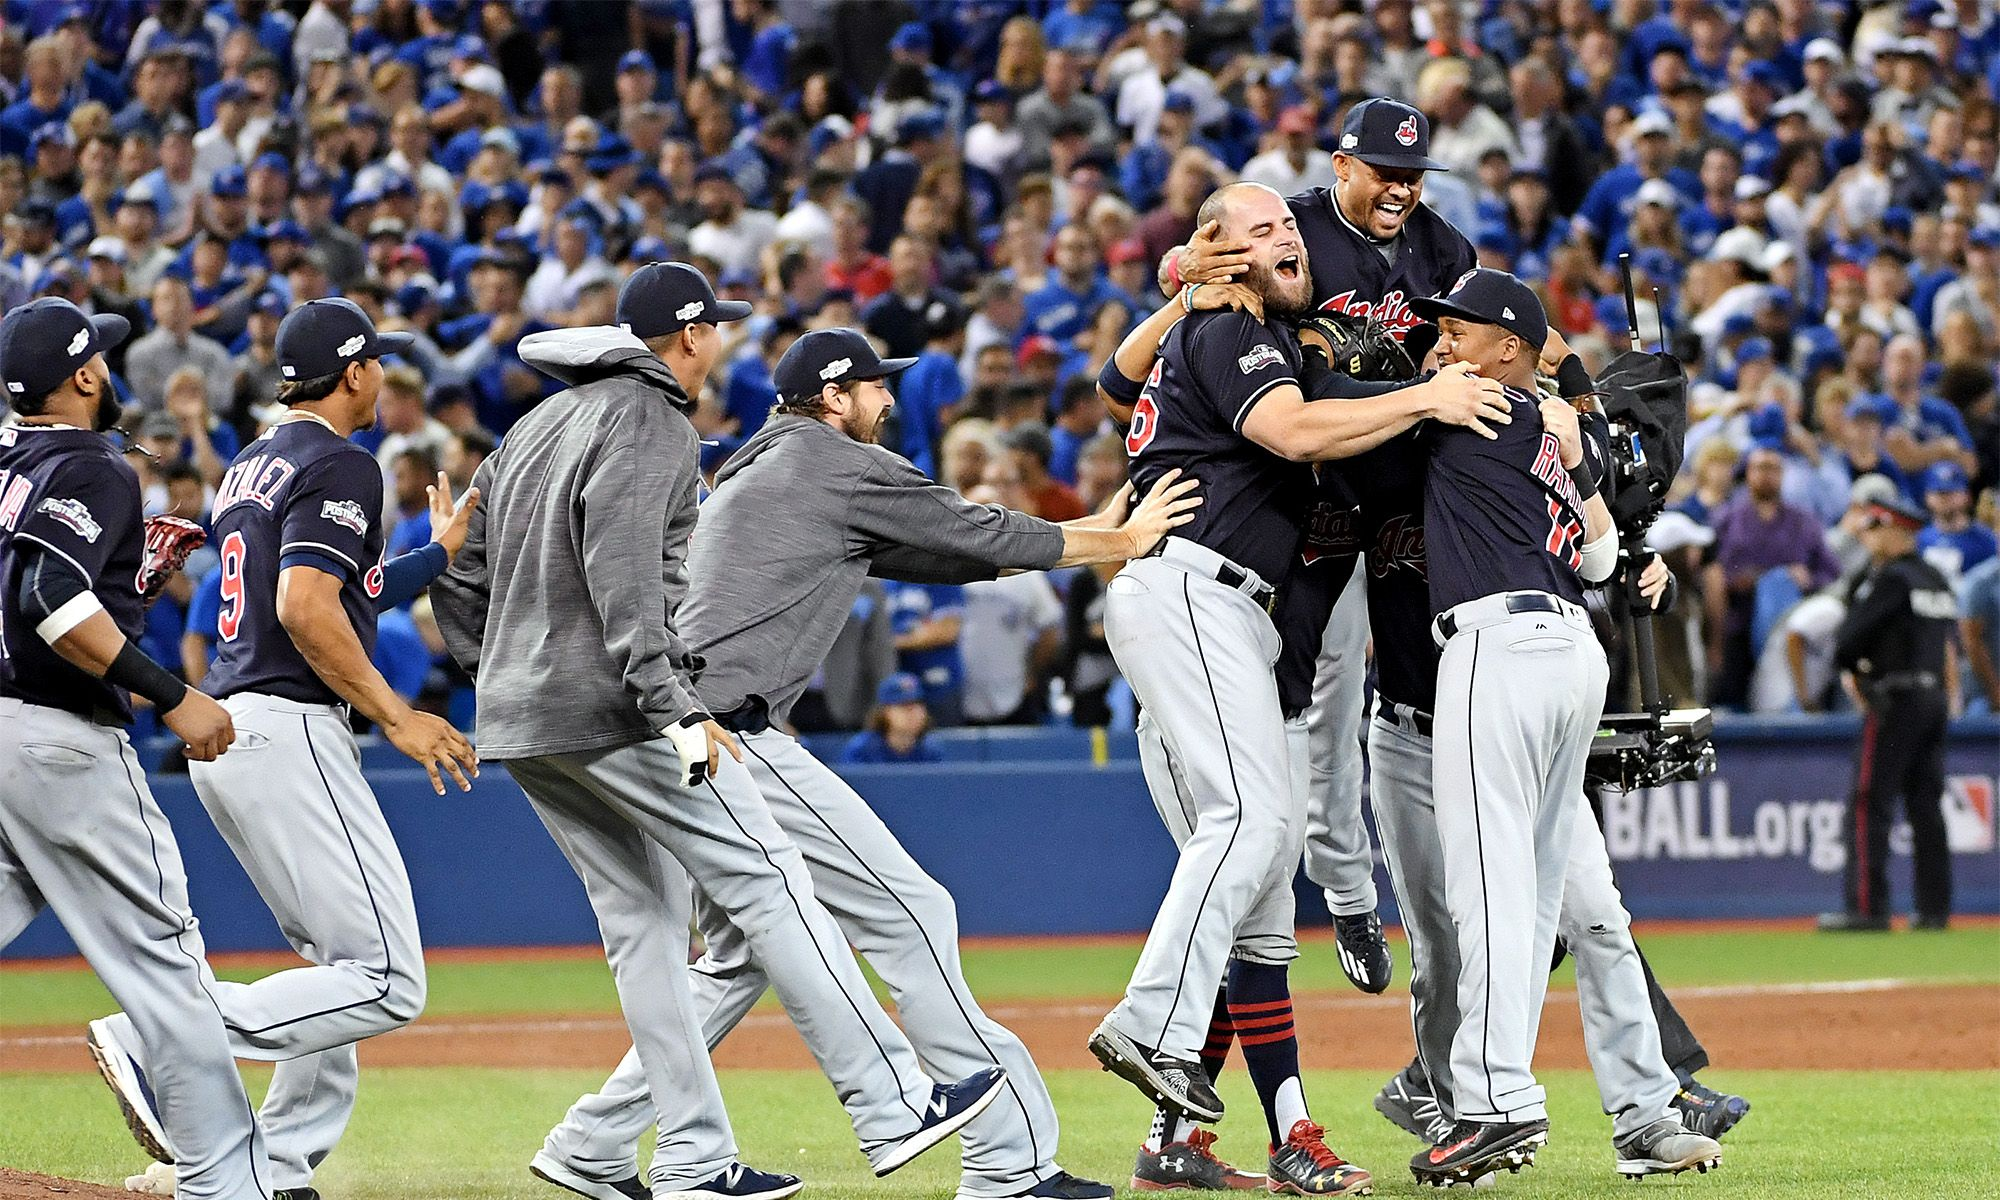 ALCS MVP Andrew Miller and the Indians' bullpen totally